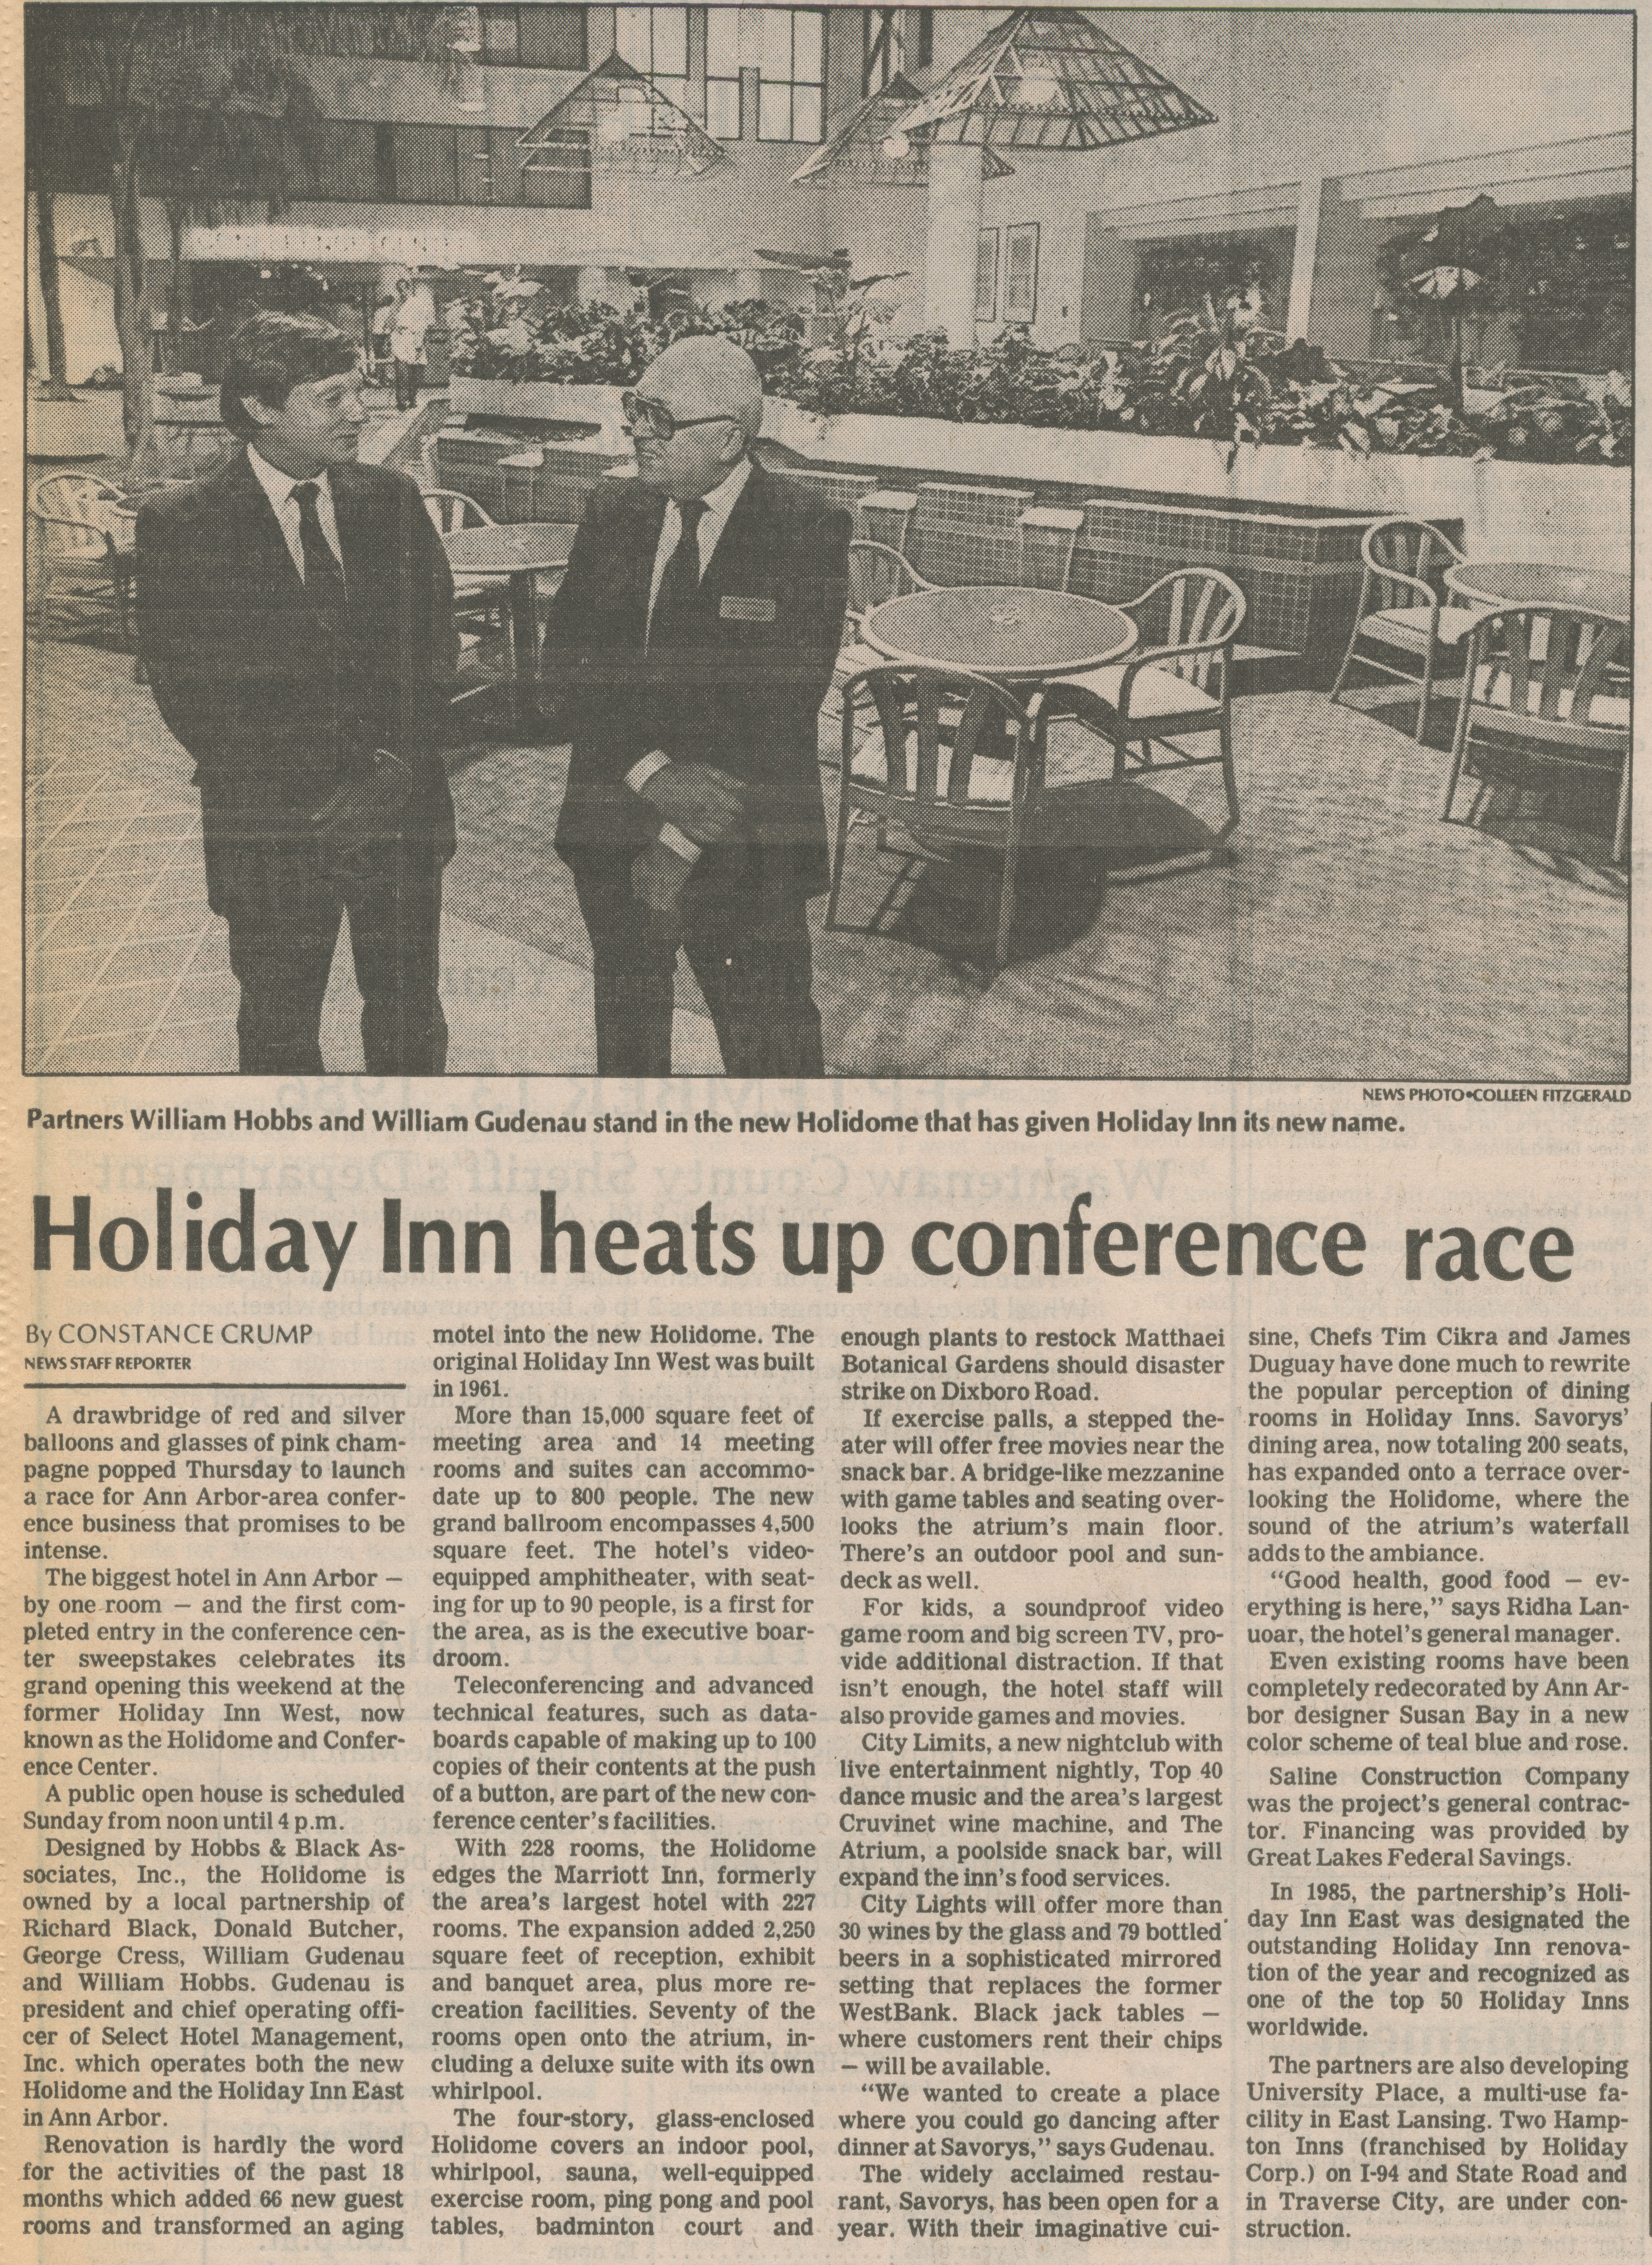 Holiday Inn Heats Up Conference Race image